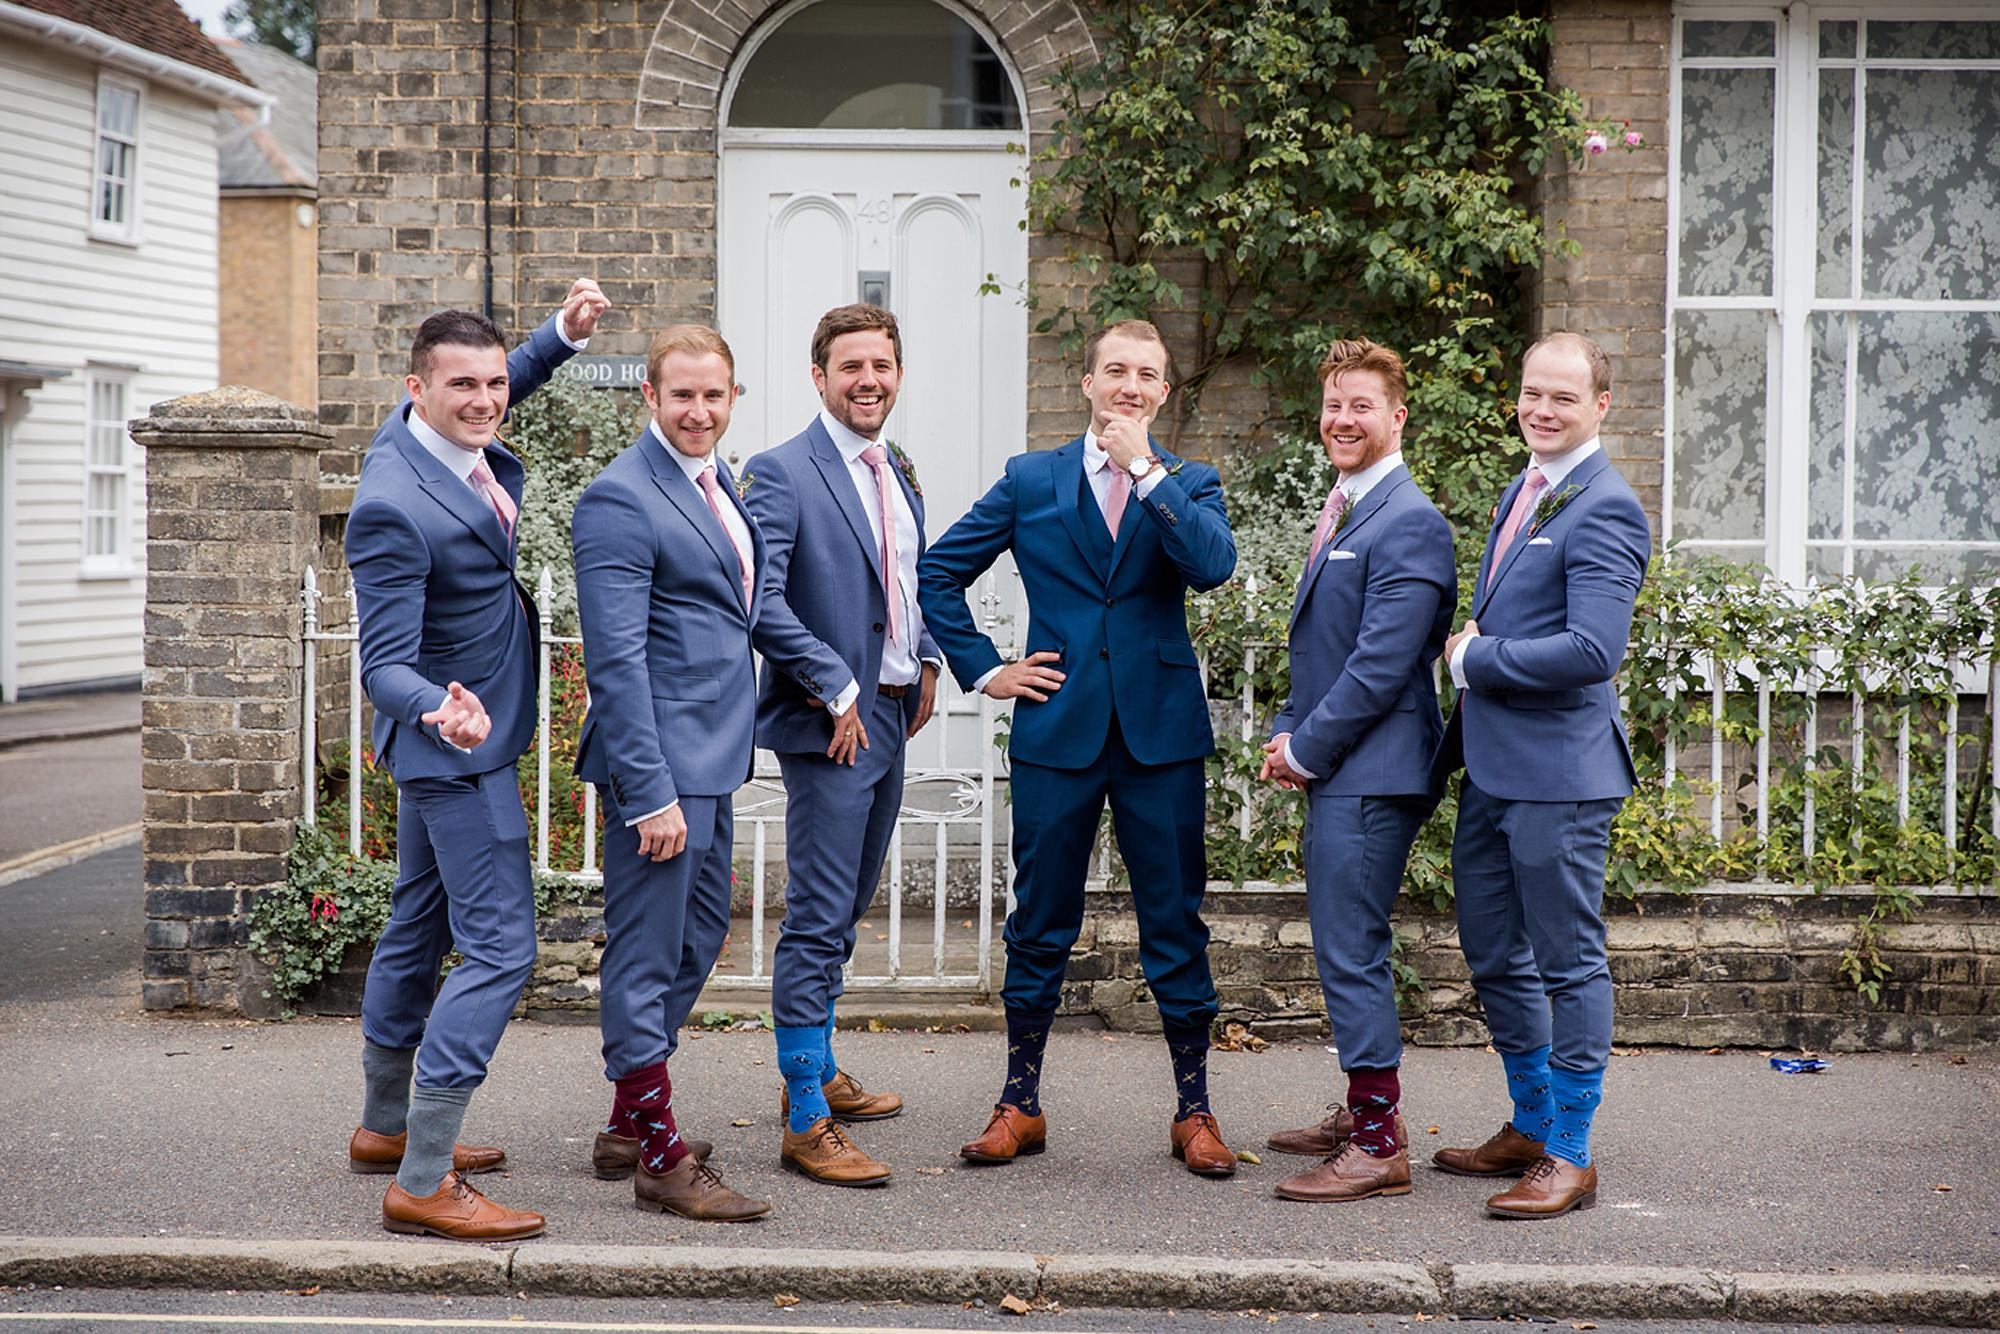 Marks Hall Estate wedding photography groomsmen with funky socks